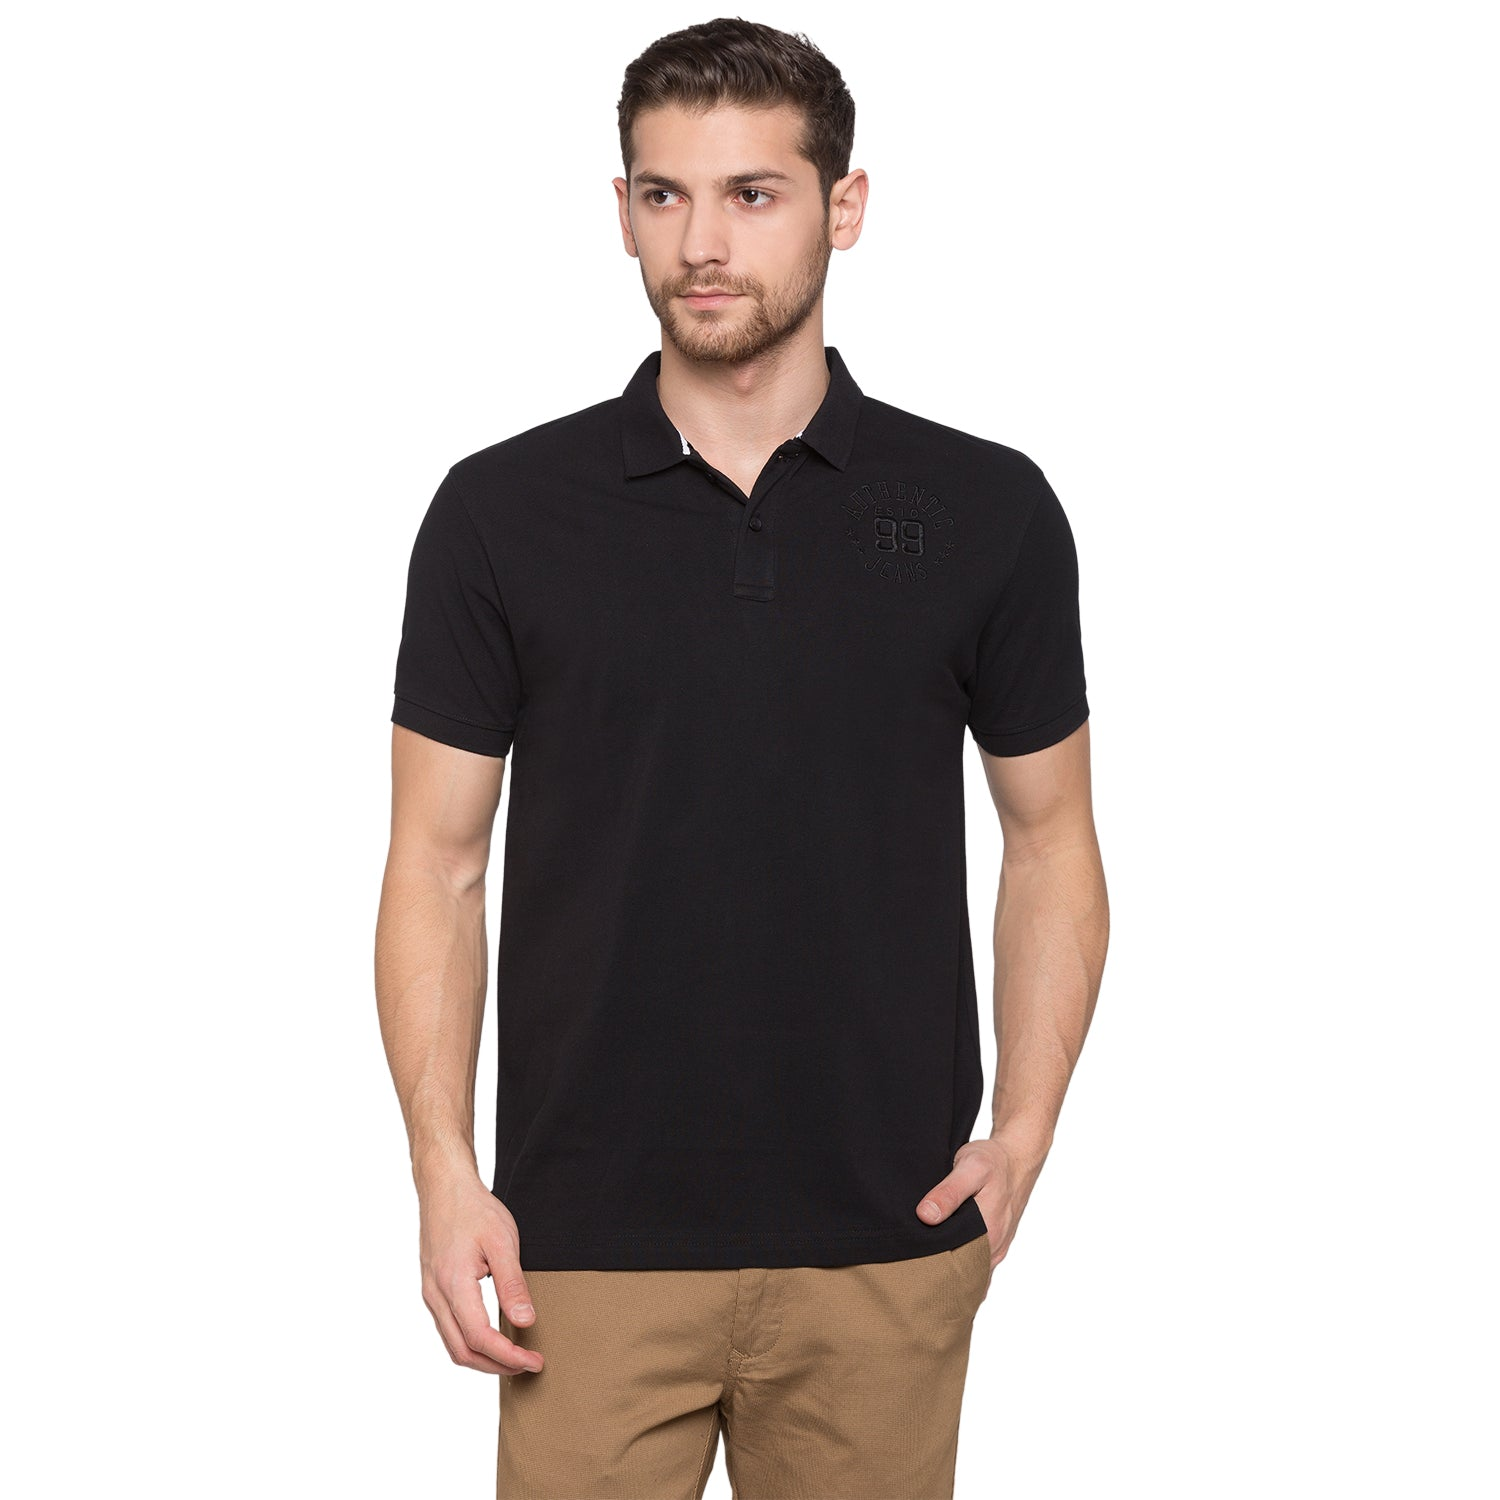 Globus Black Solid Polo T-Shirt1